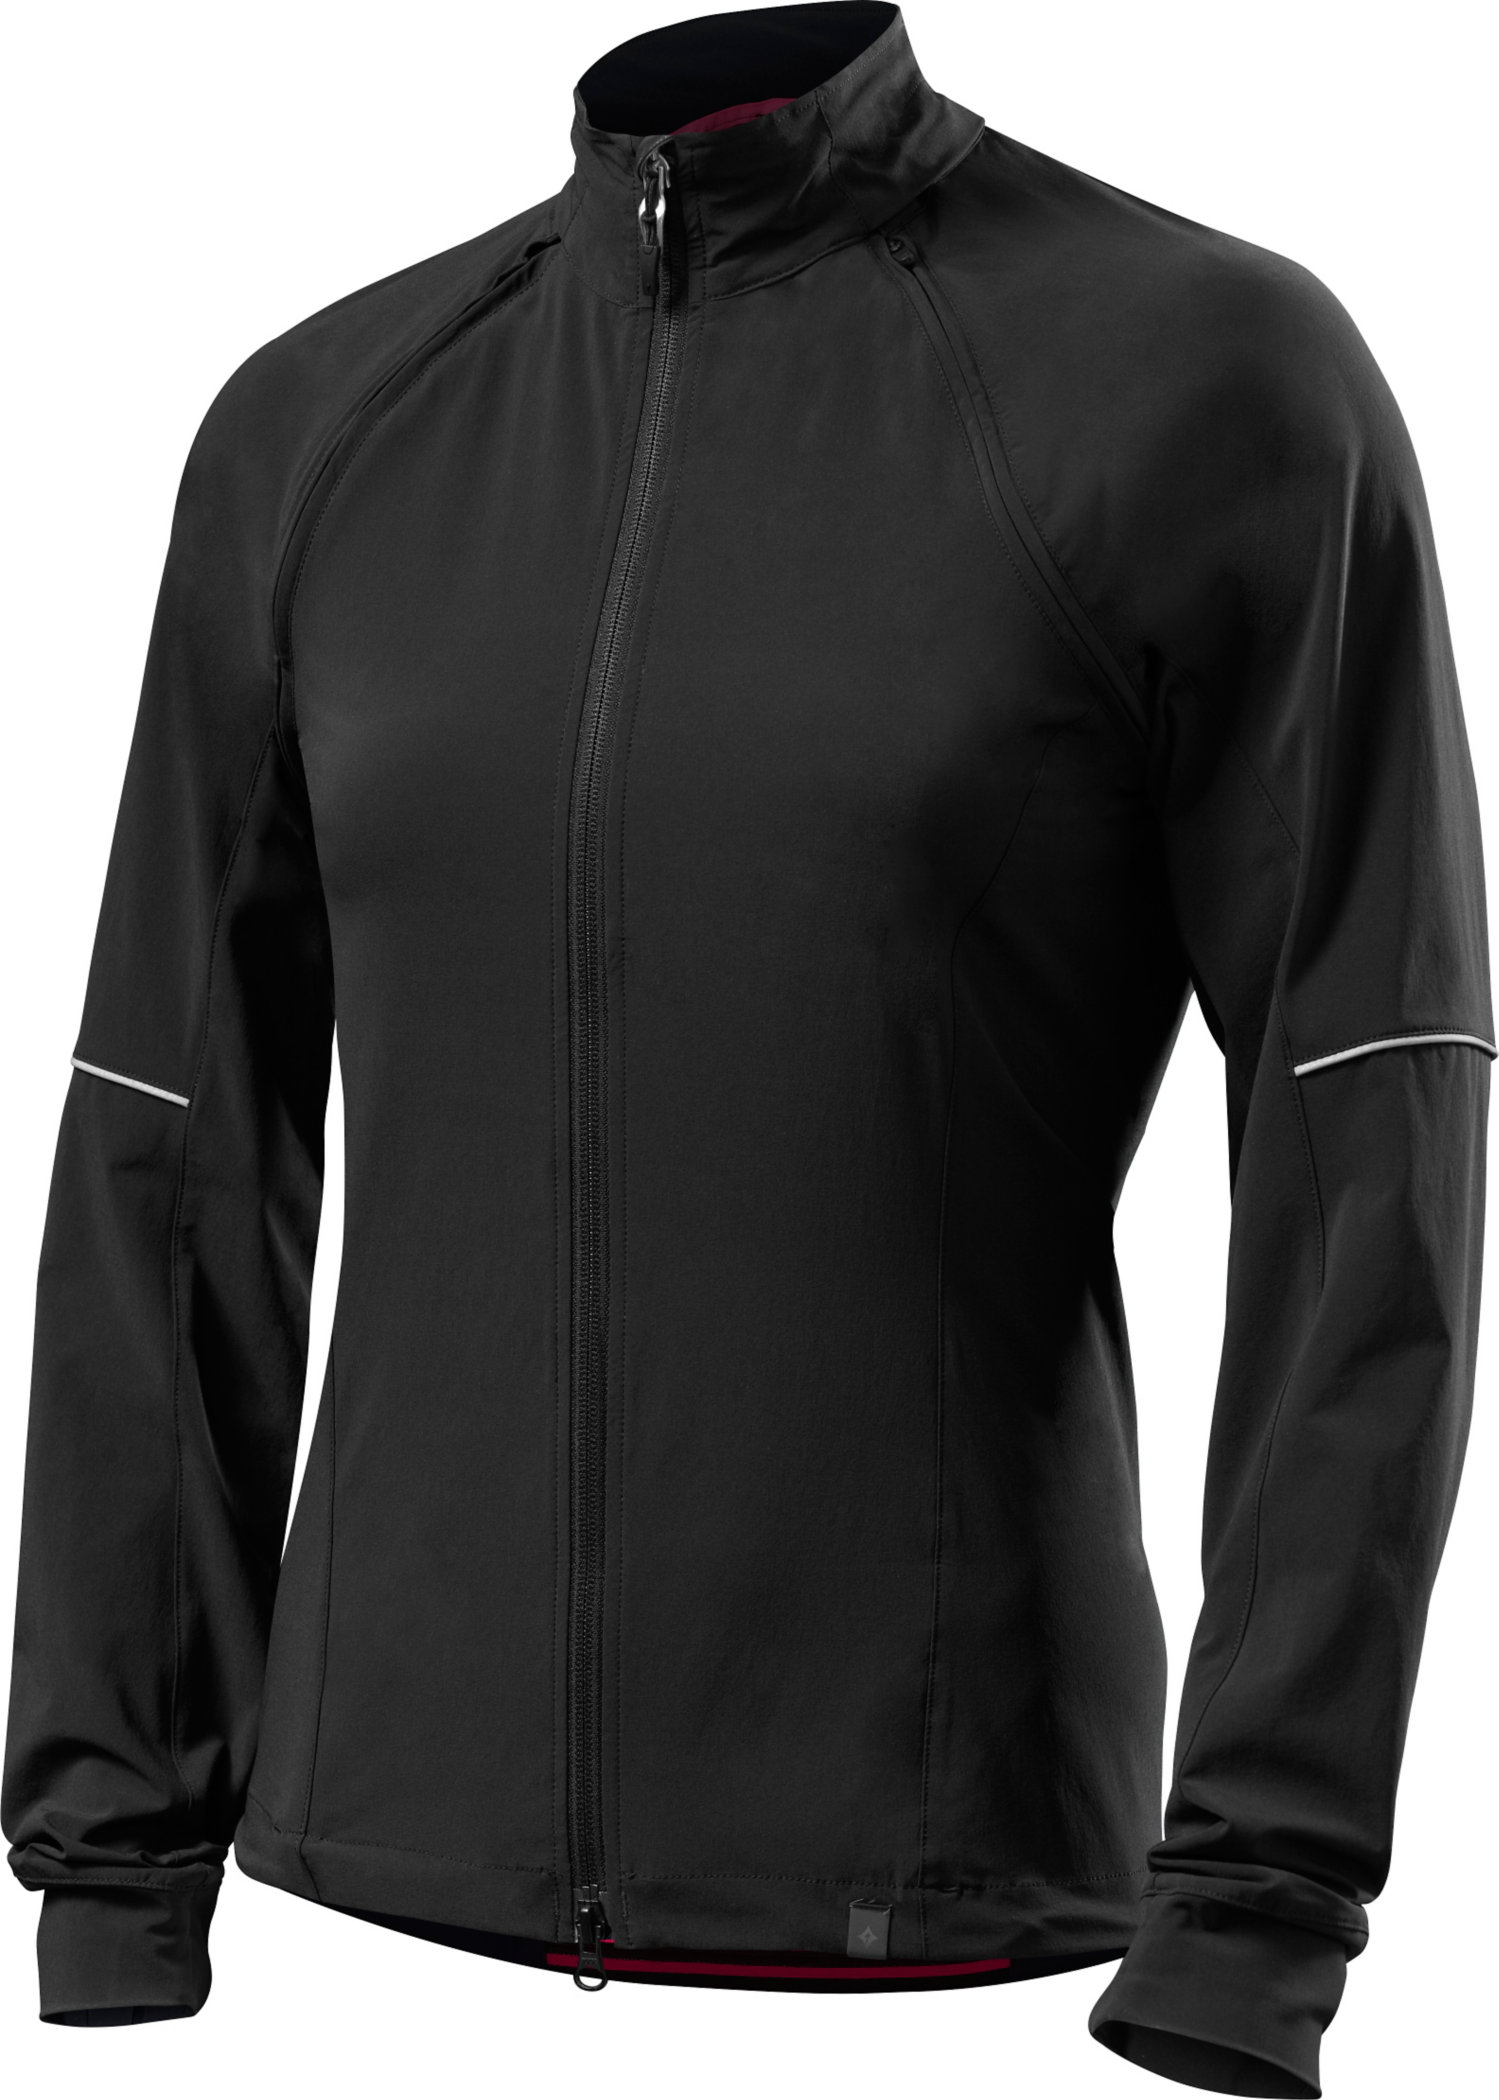 SPECIALIZED DEFLECT HYBRID JACKET WMN BLK M - Alpha Bikes